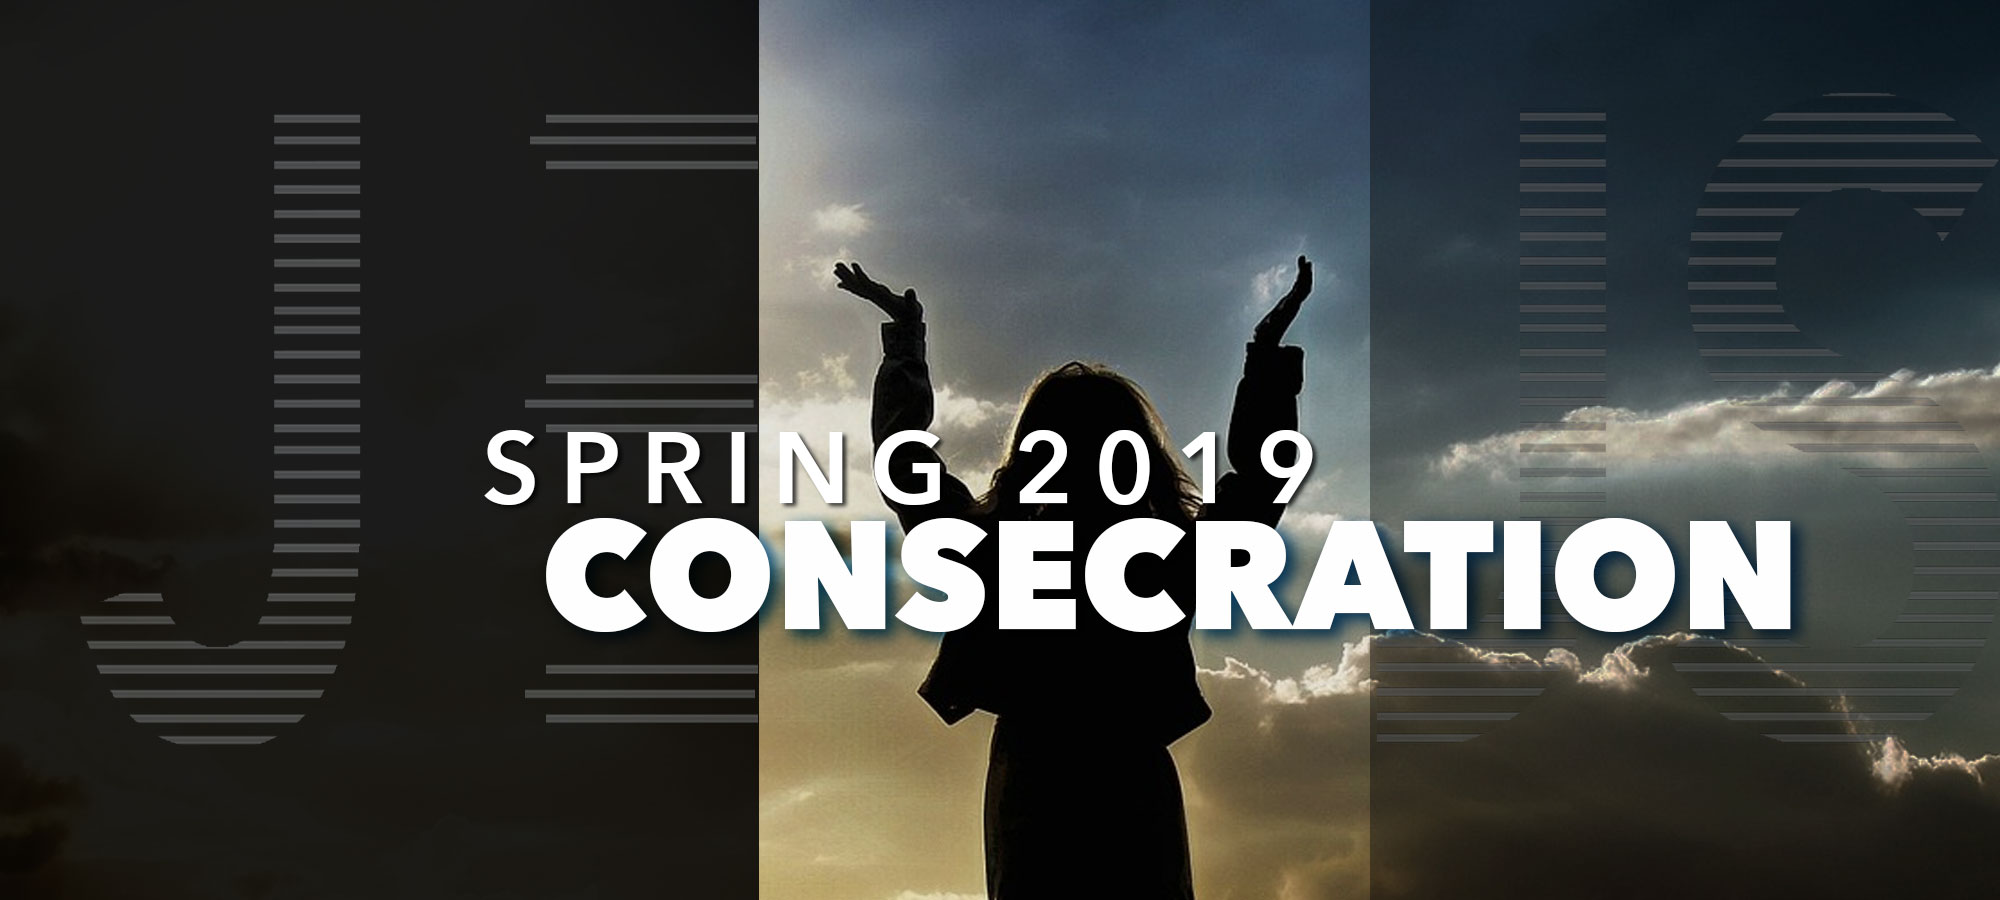 spring consecration